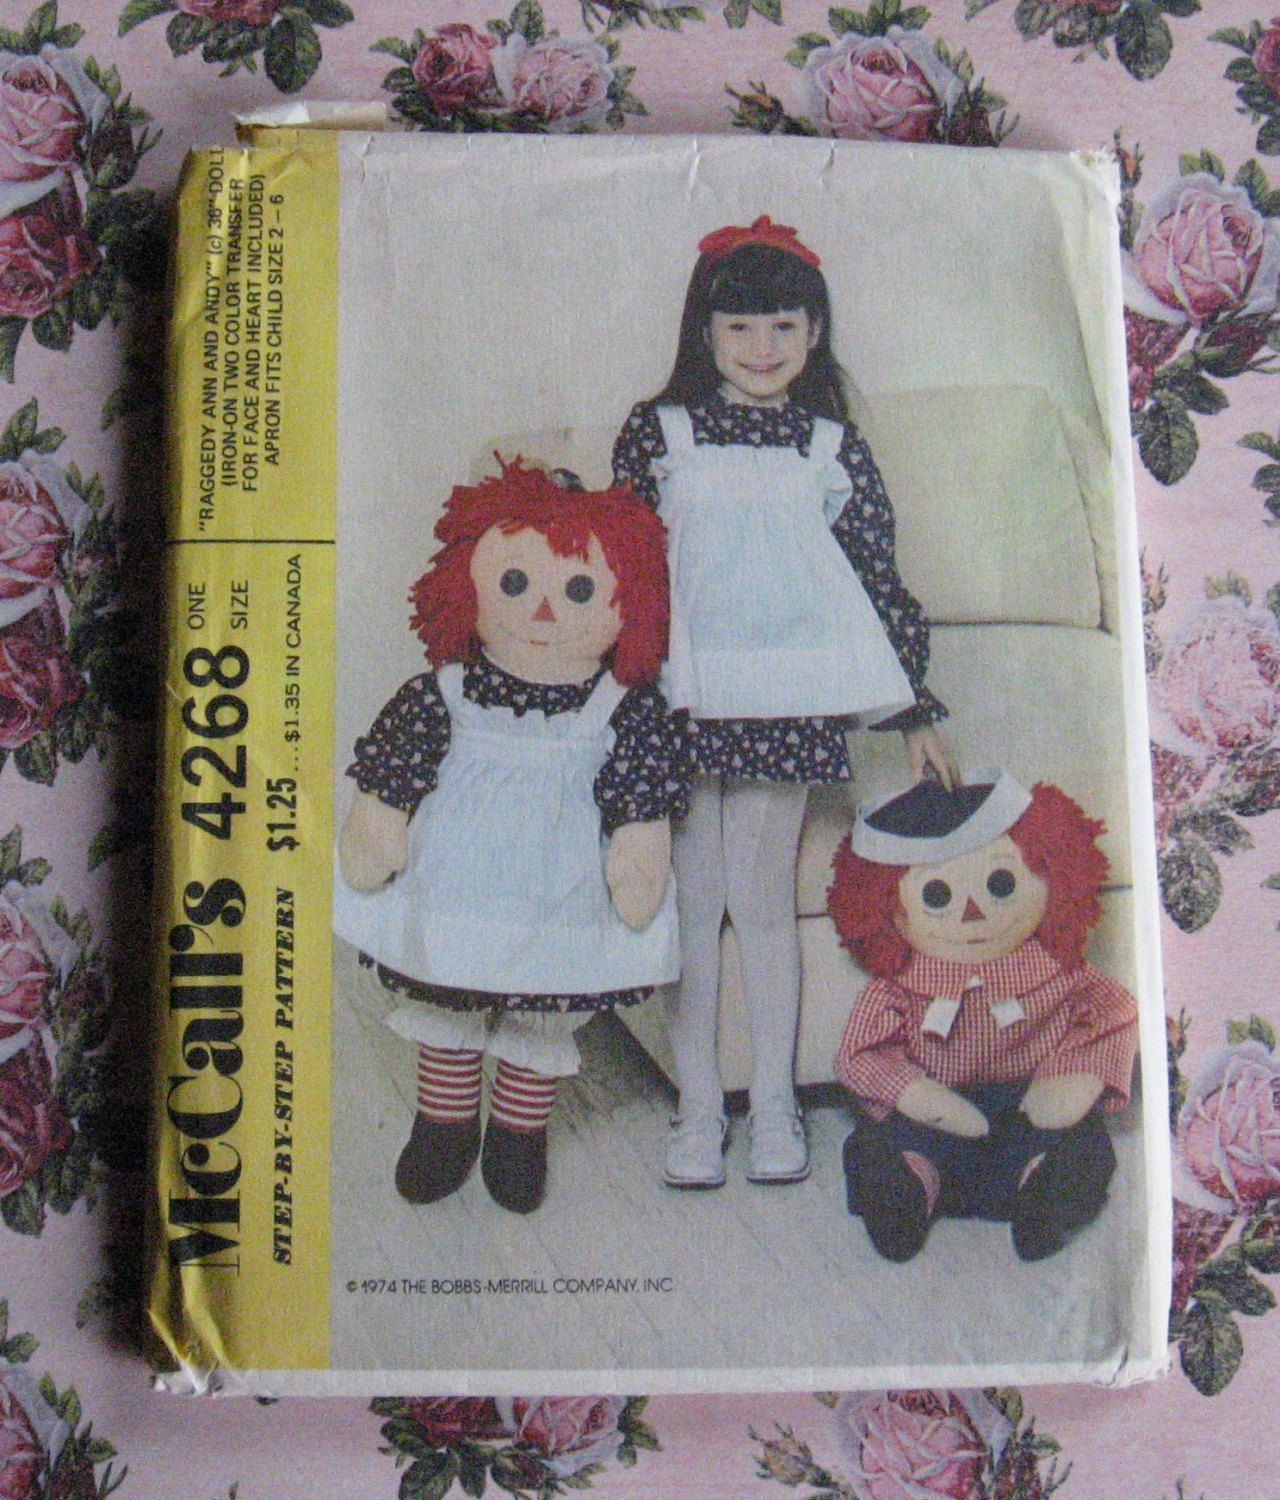 Vintage McCall Step By Step 1970's Pattern UNUSED Large Raggedy Ann & Raggedy Andy Doll Patterns Plus Girl's Raggedy Ann Dress Or Costume by MyPastLivesVintage on Etsy